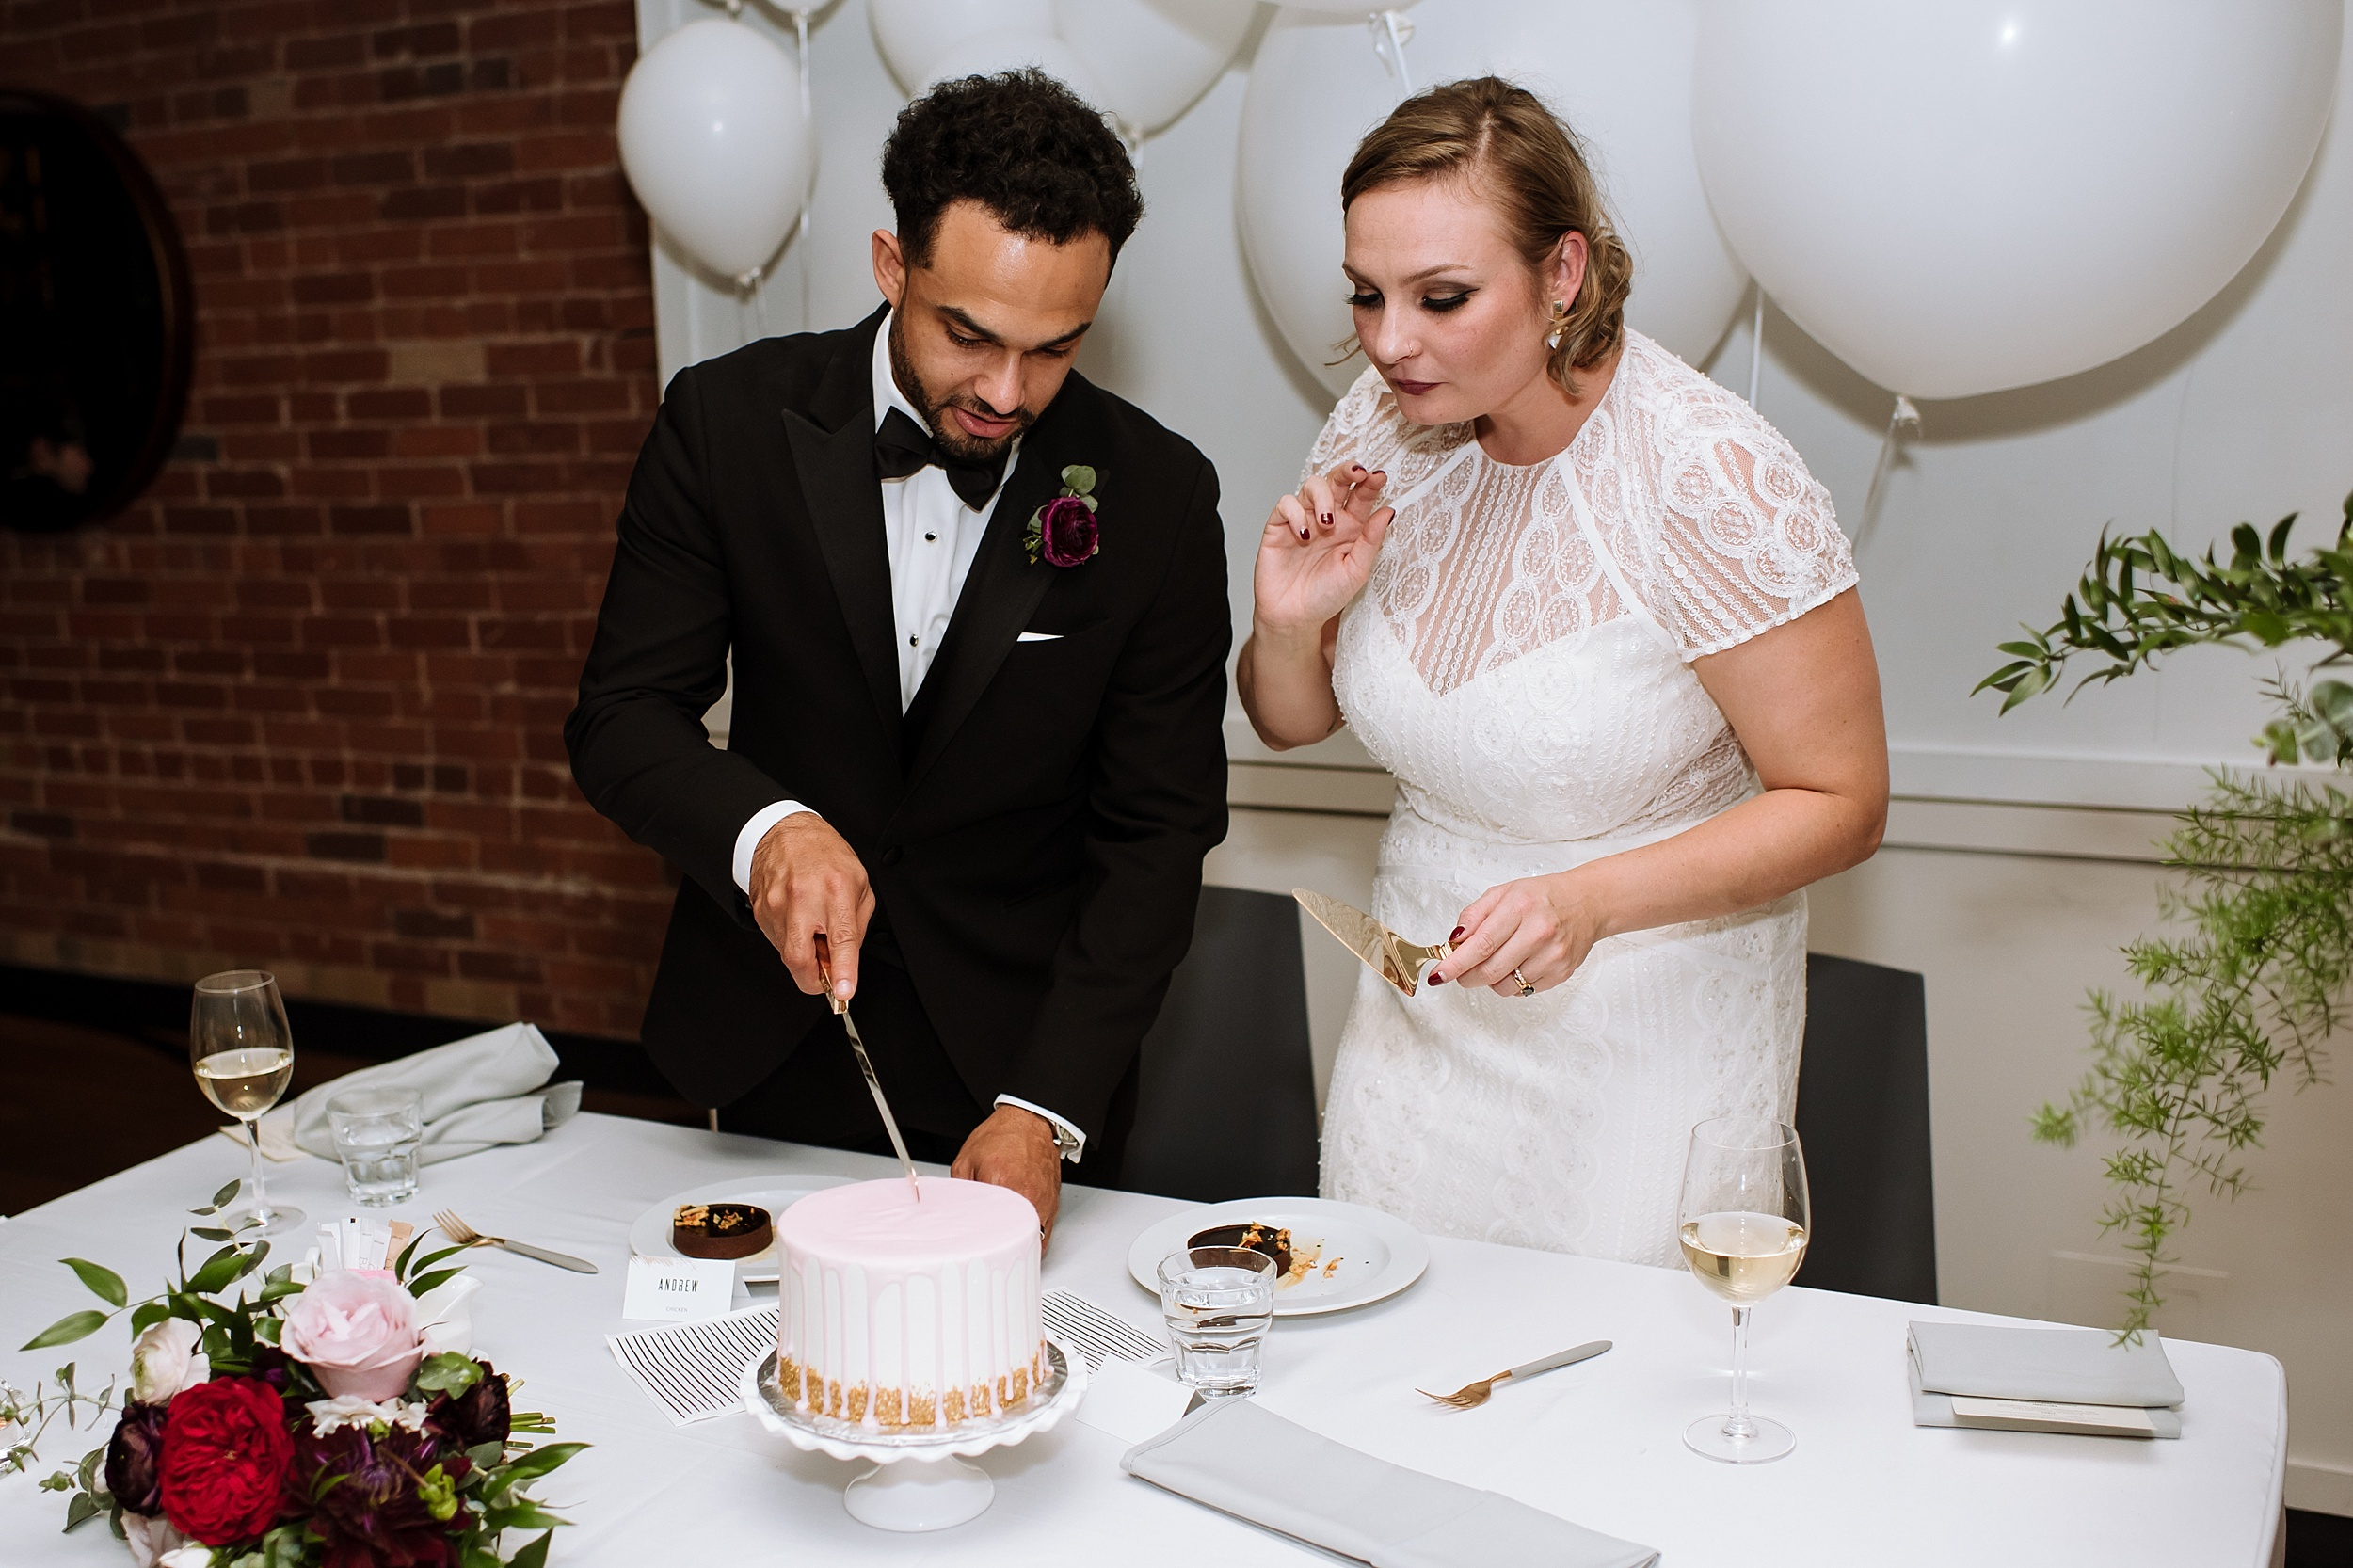 Broadview_Hotel_Wedding_Toronto_Photographer_0051.jpg